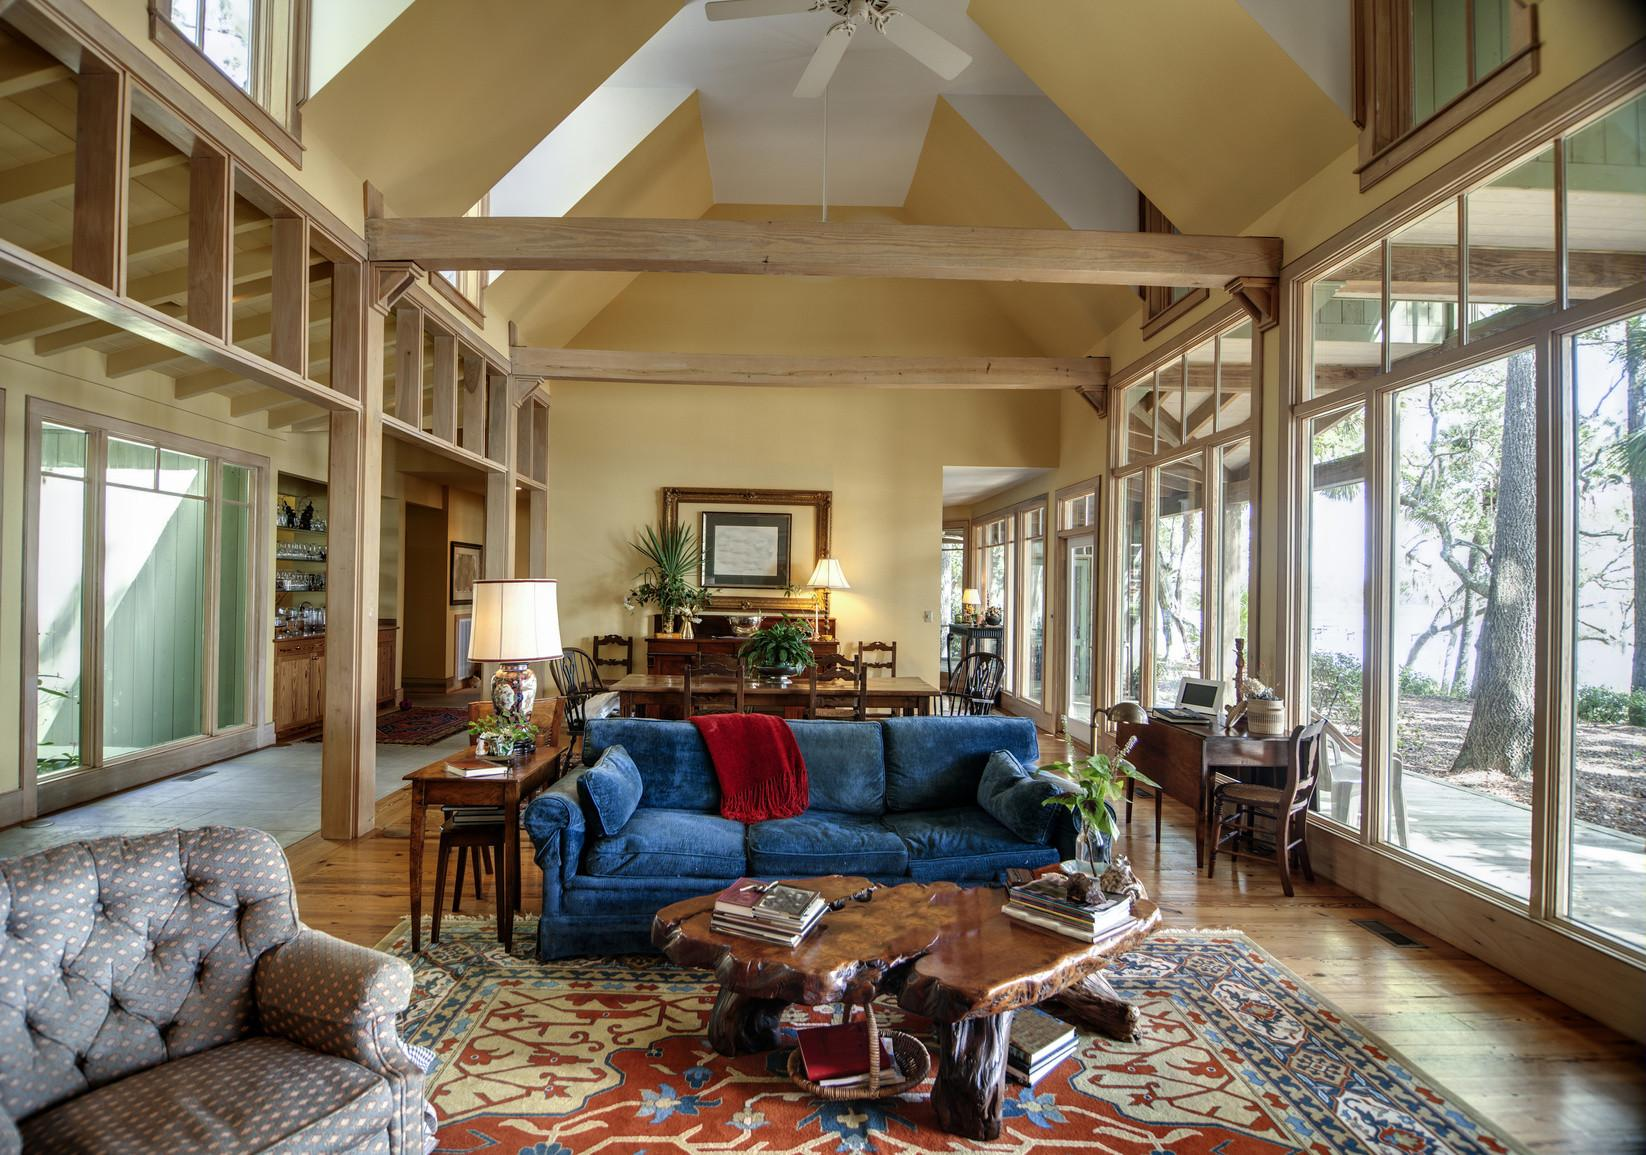 Eclectic Interior Style